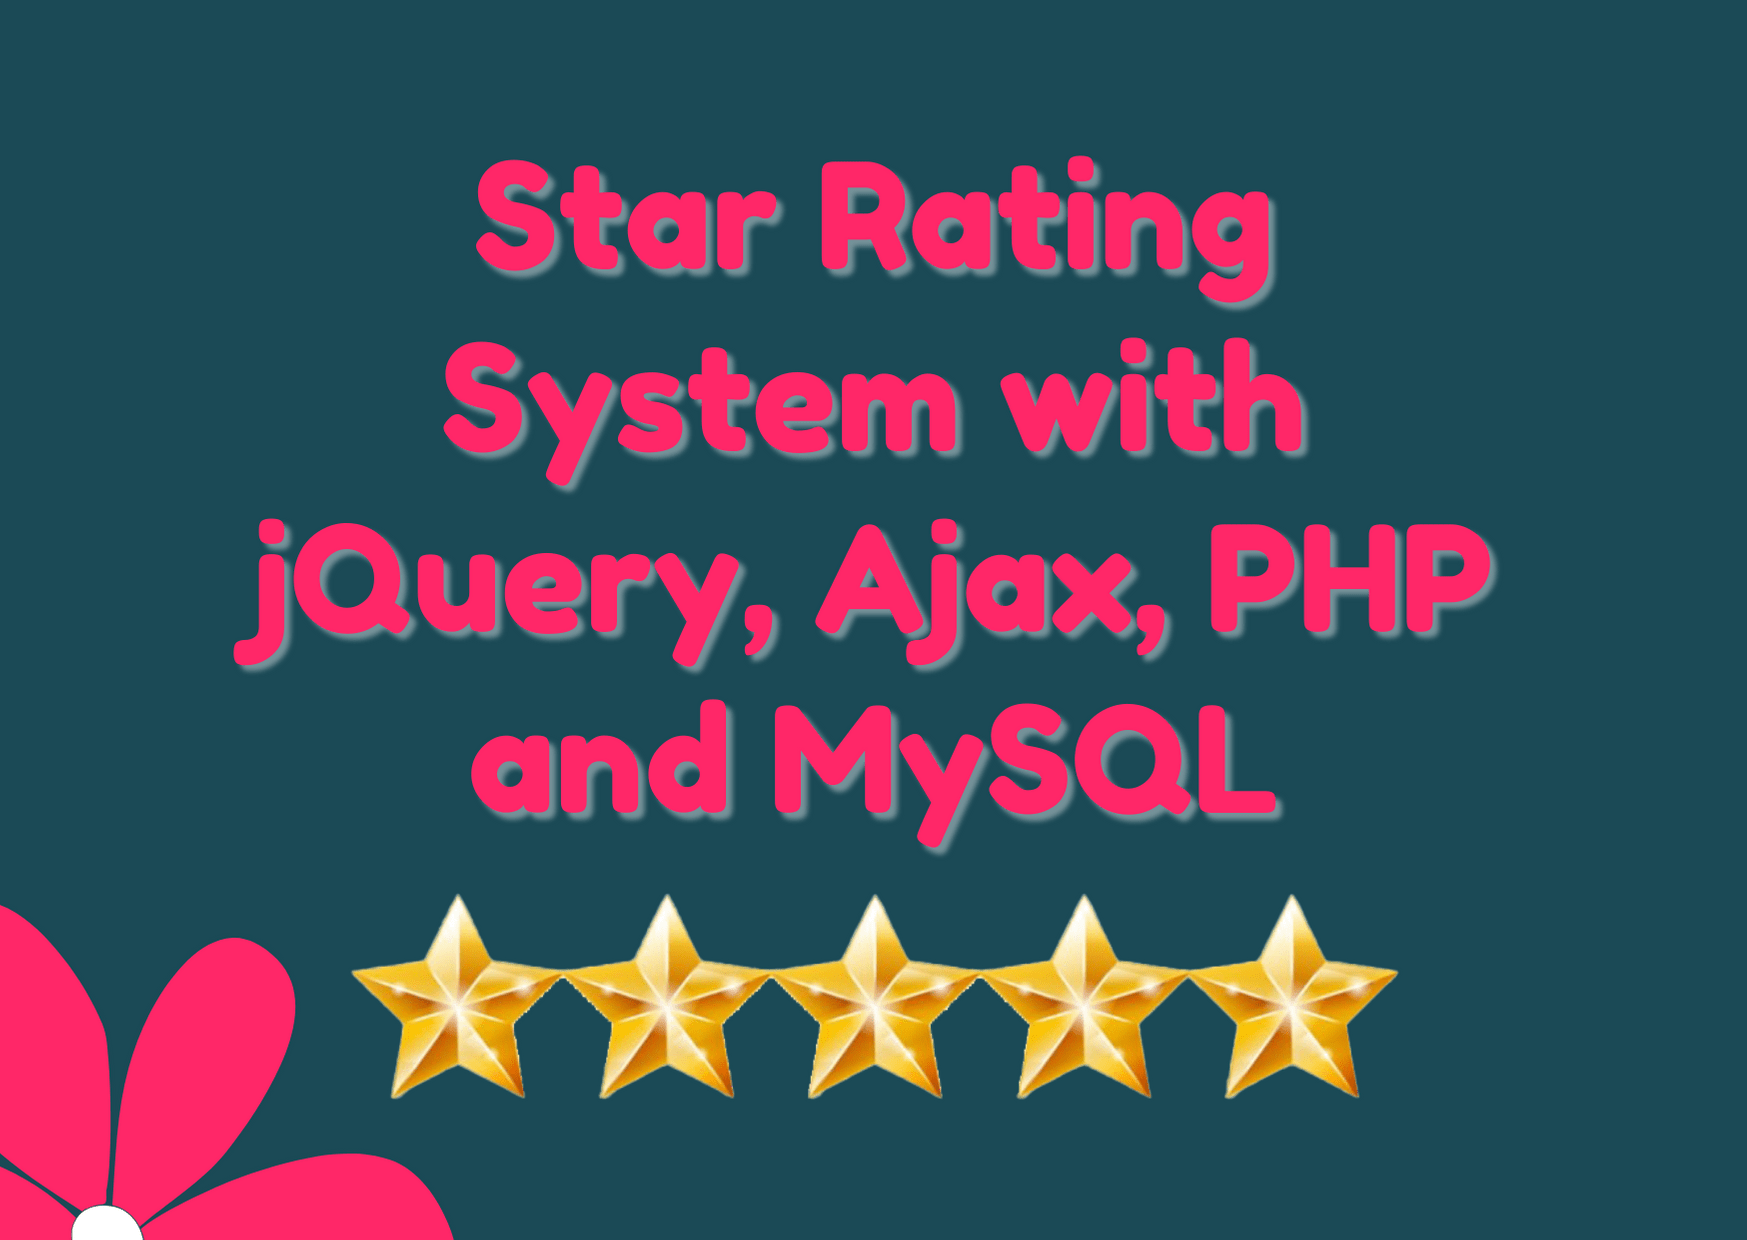 Star Rating System with jQuery, Ajax, PHP and MySQL